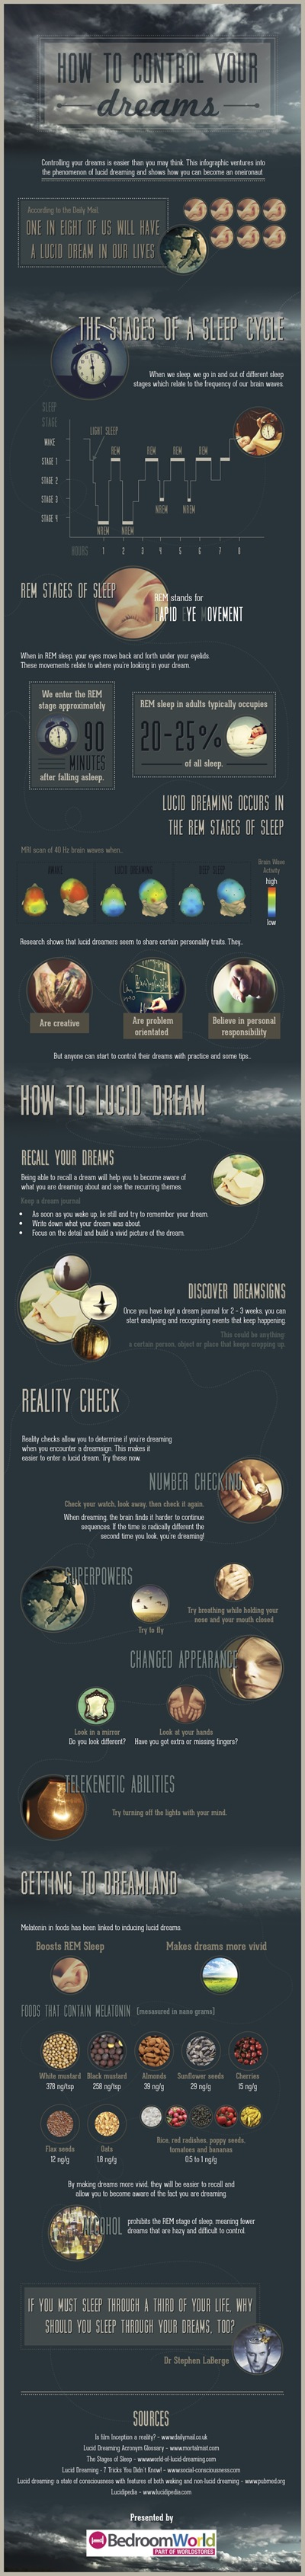 how-to-control-your-dreams-infographic_51025574ea3aa